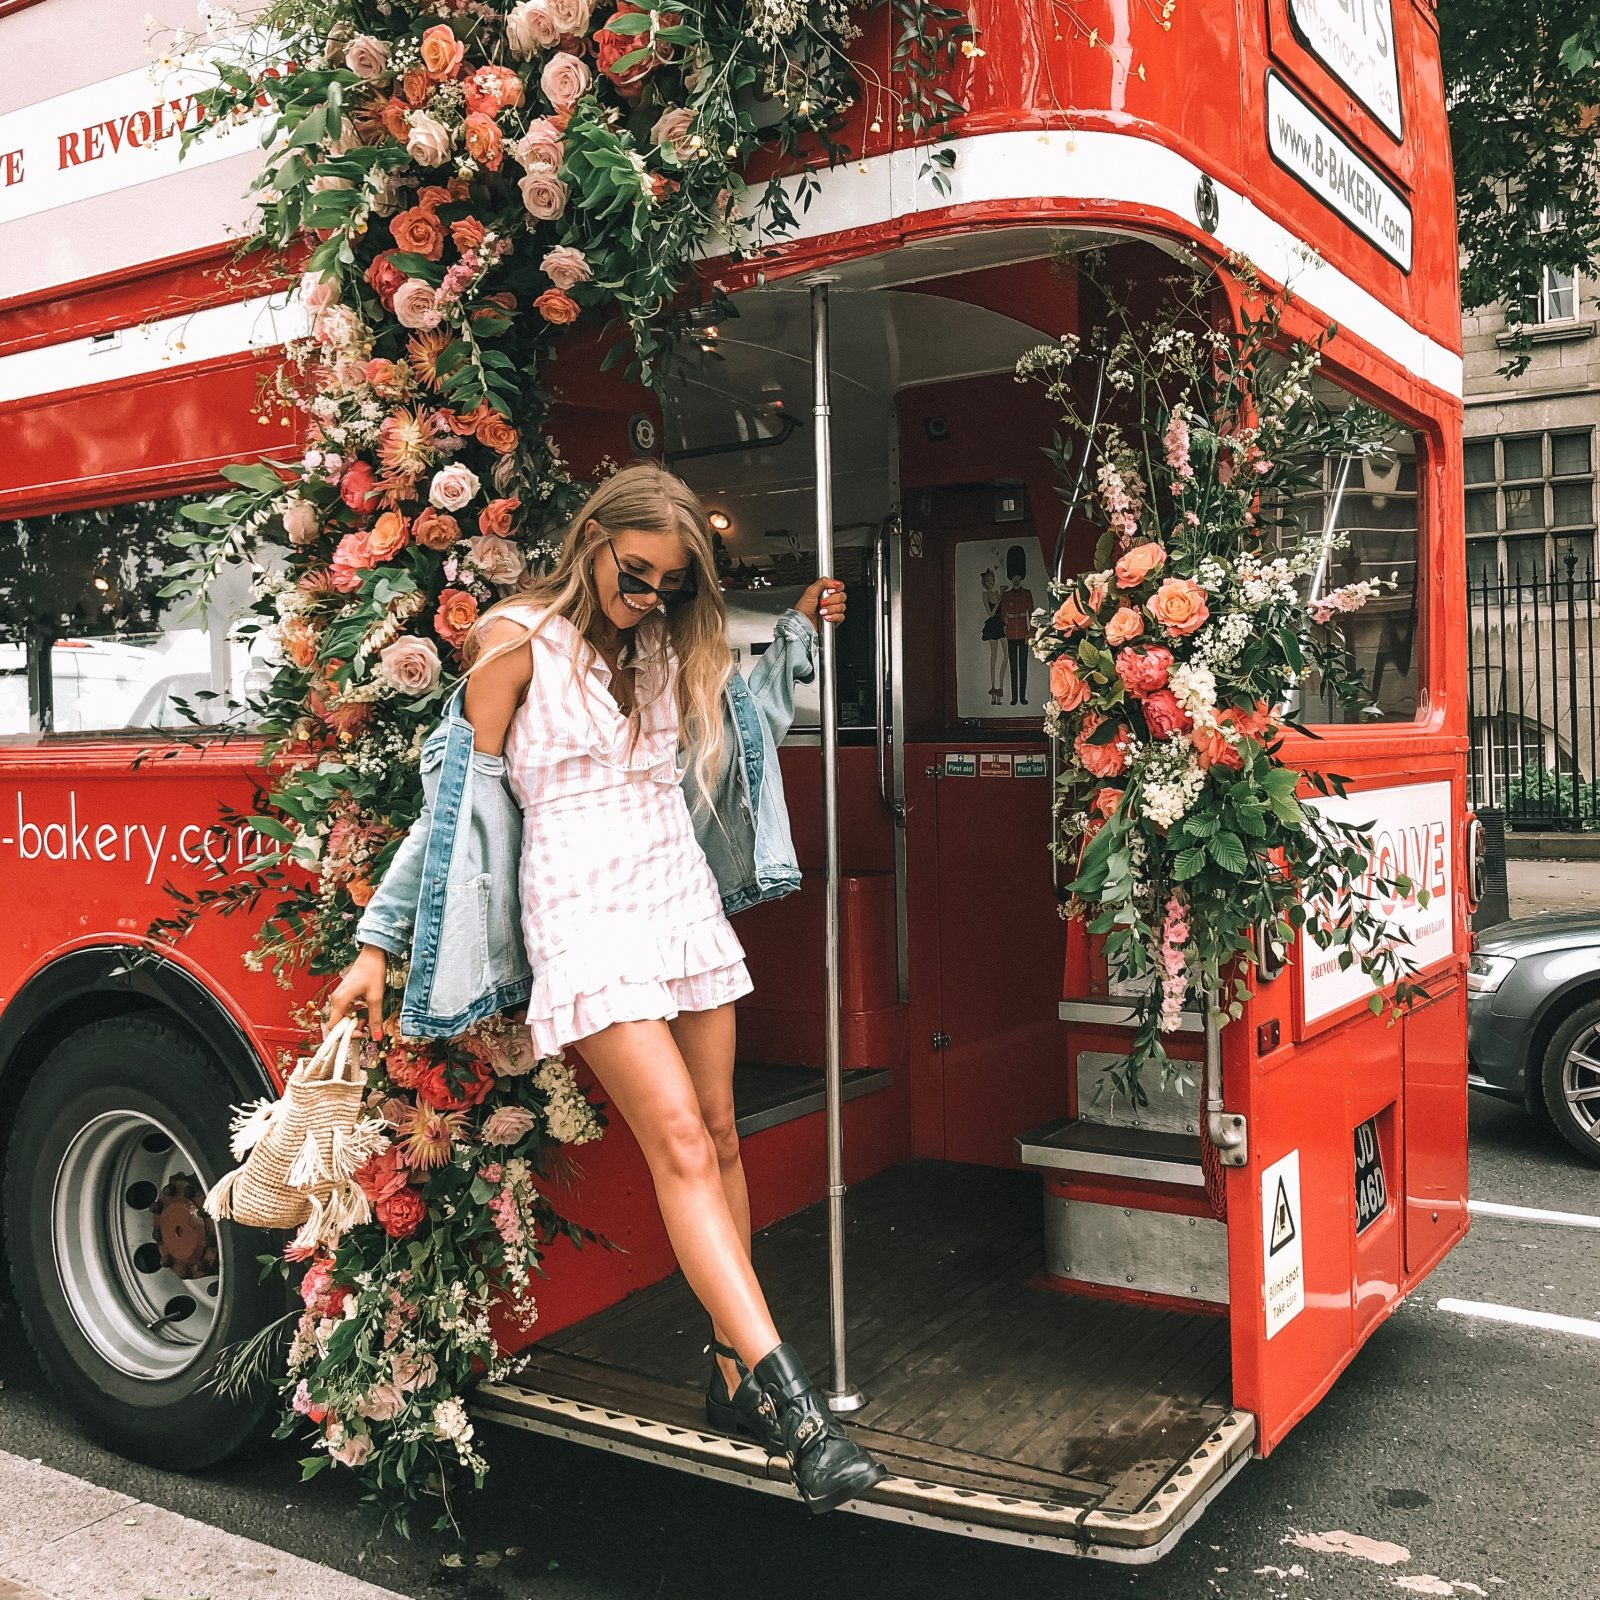 Revolve Takes London Tularosa Bus Tour